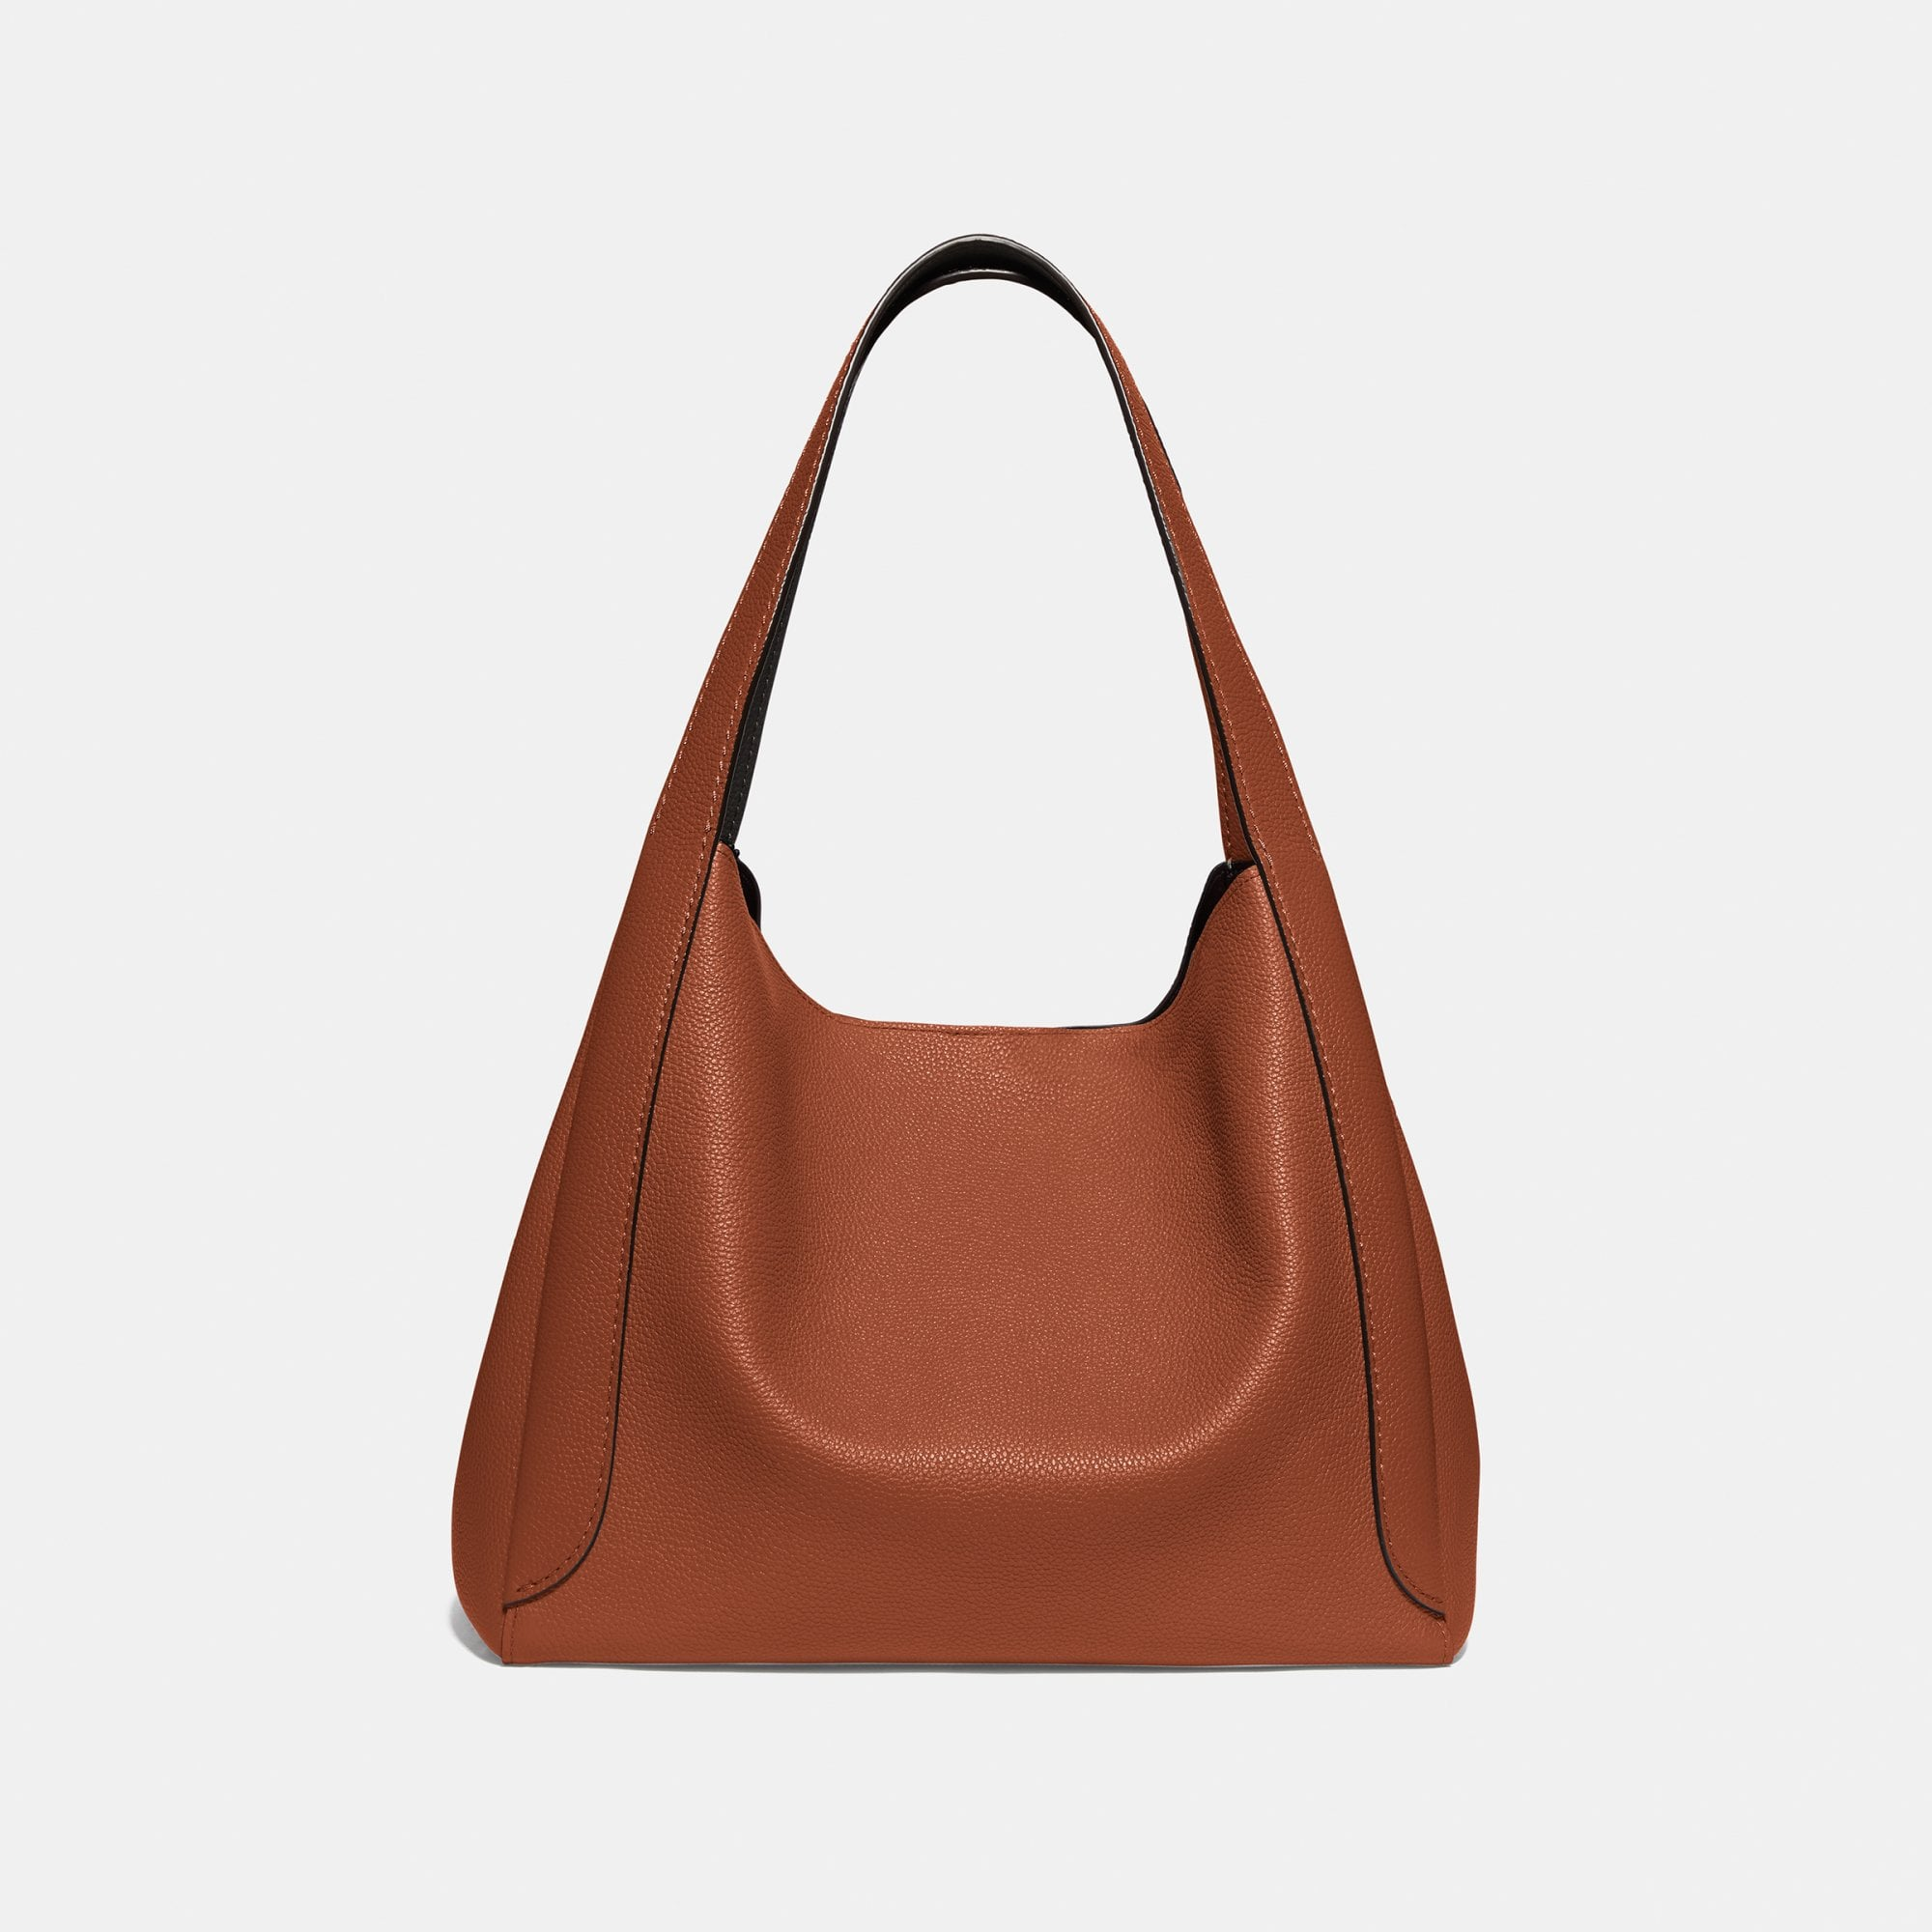 meet moderate price limited guantity Hadley Hobo Bag in 1941 Saddle